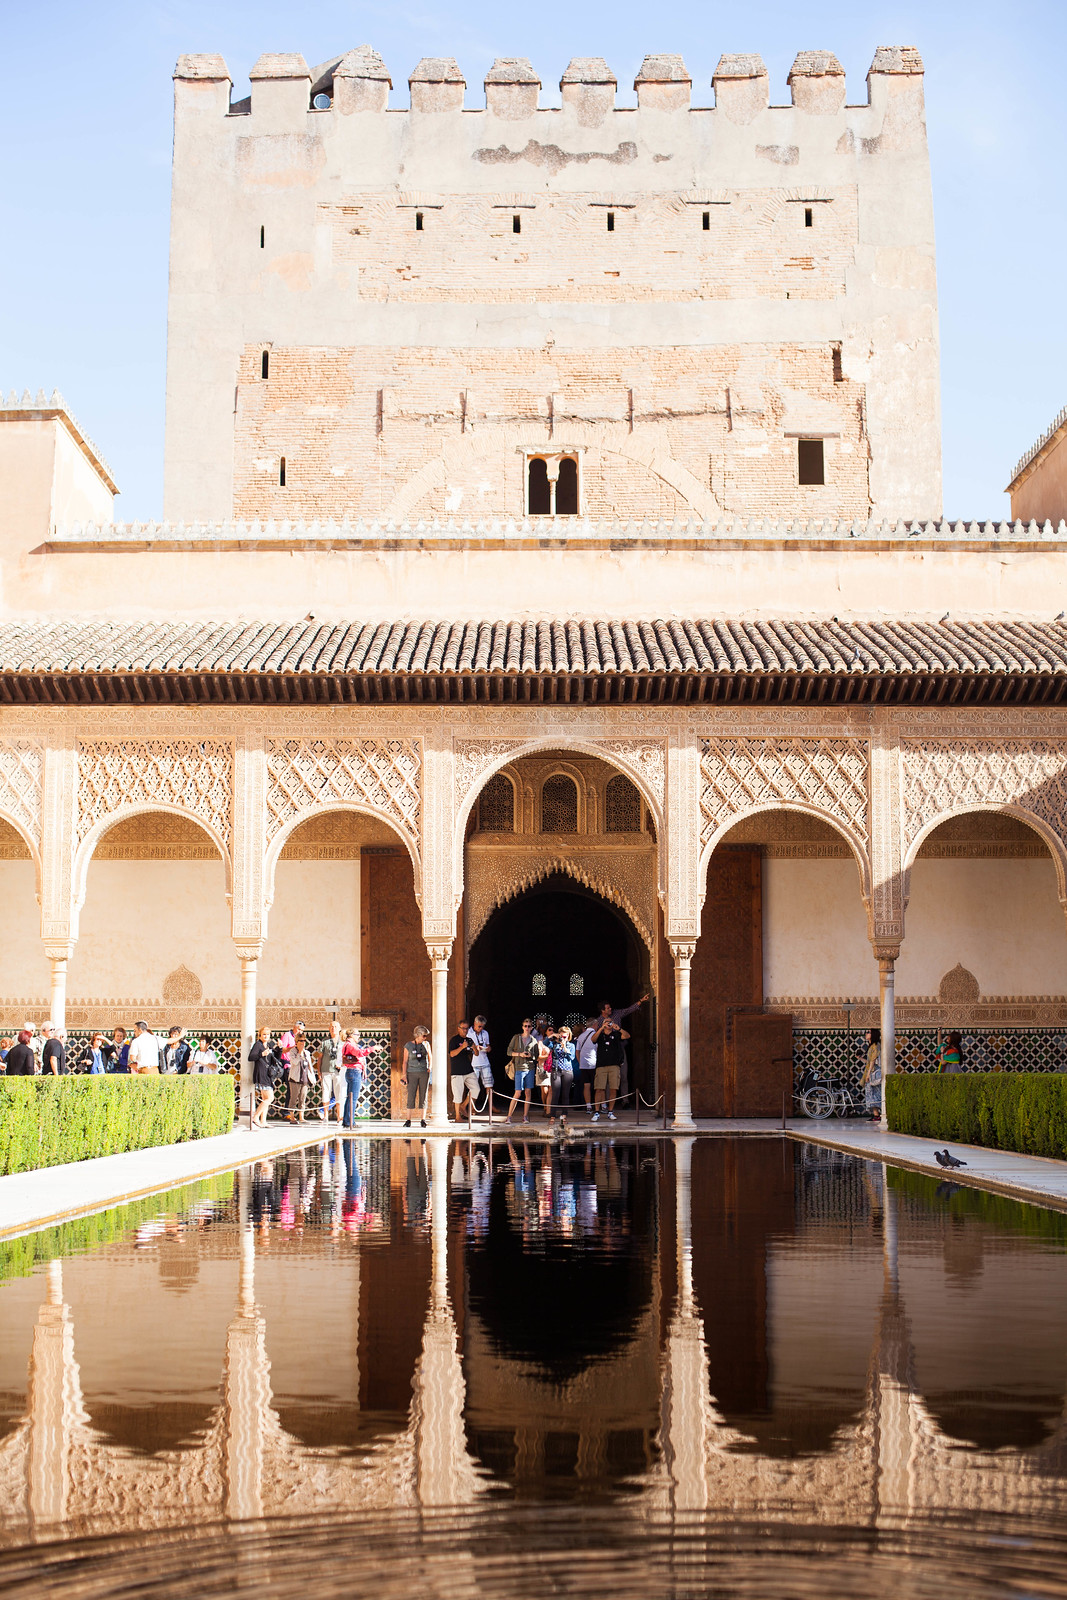 the alhambra palace essay Tales of the alhambra is a collection of essays, verbal sketches, and stories by washington irving shortly after completing a biography of christopher columbus in 1828, washington irving traveled from madrid, where he had been staying, to granada, spain.